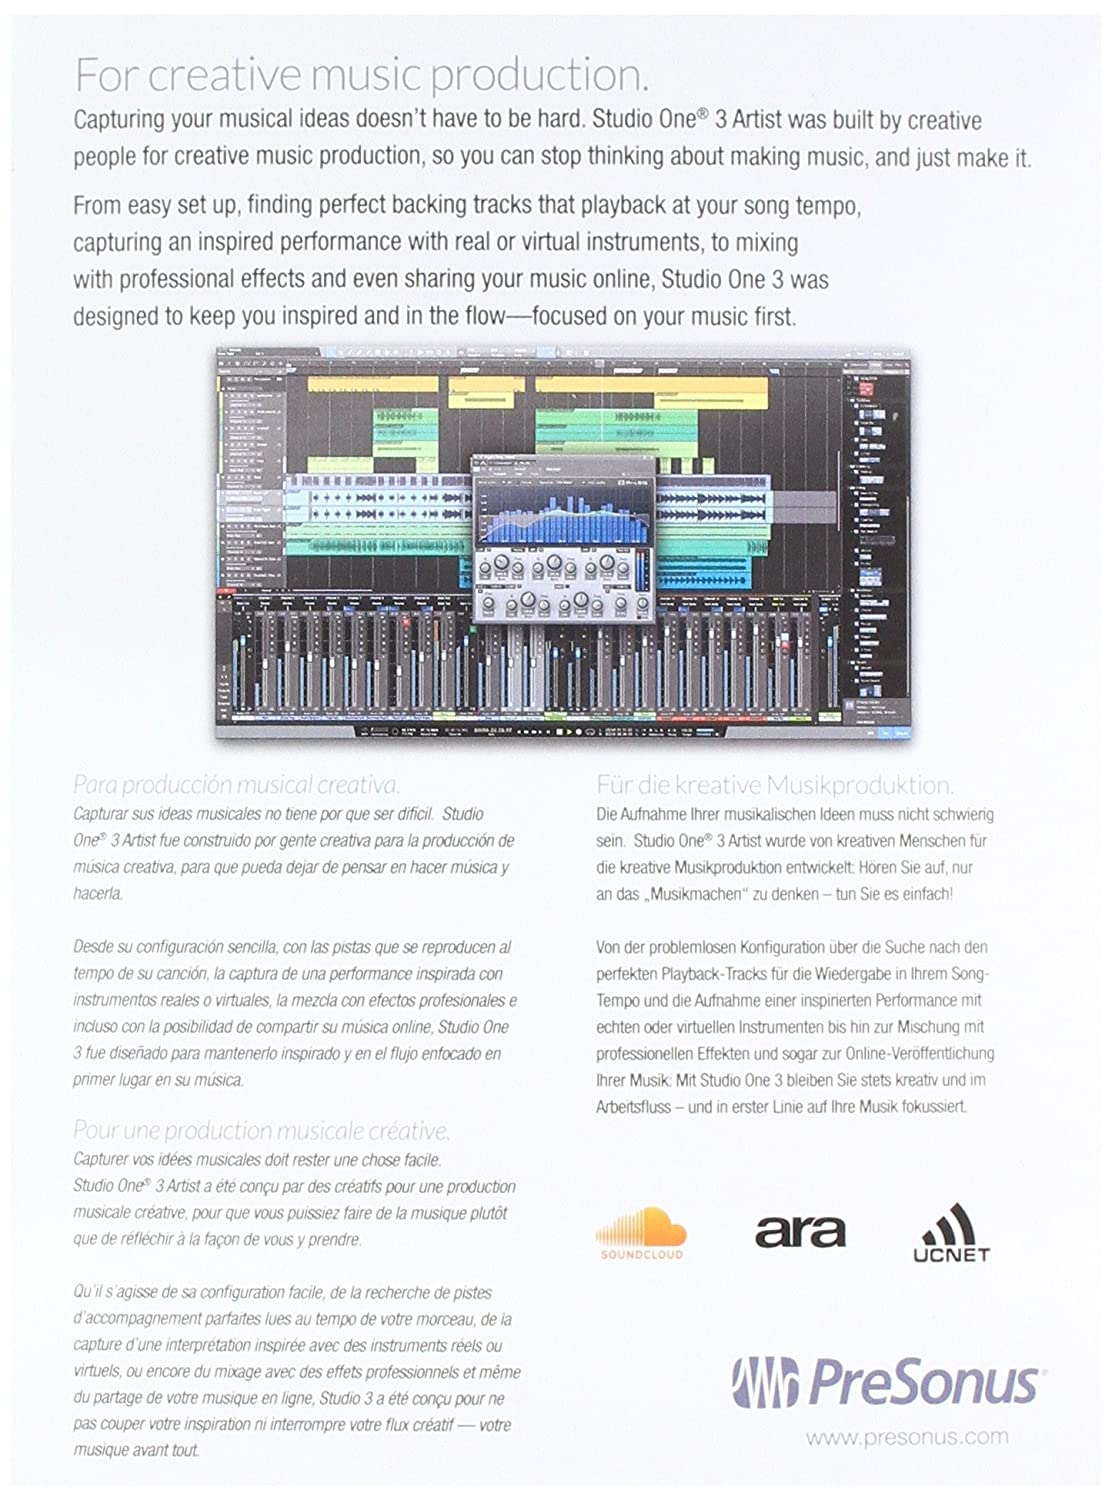 Amazon.com: PreSonus Studio One 3 Artist Recording and Production ...